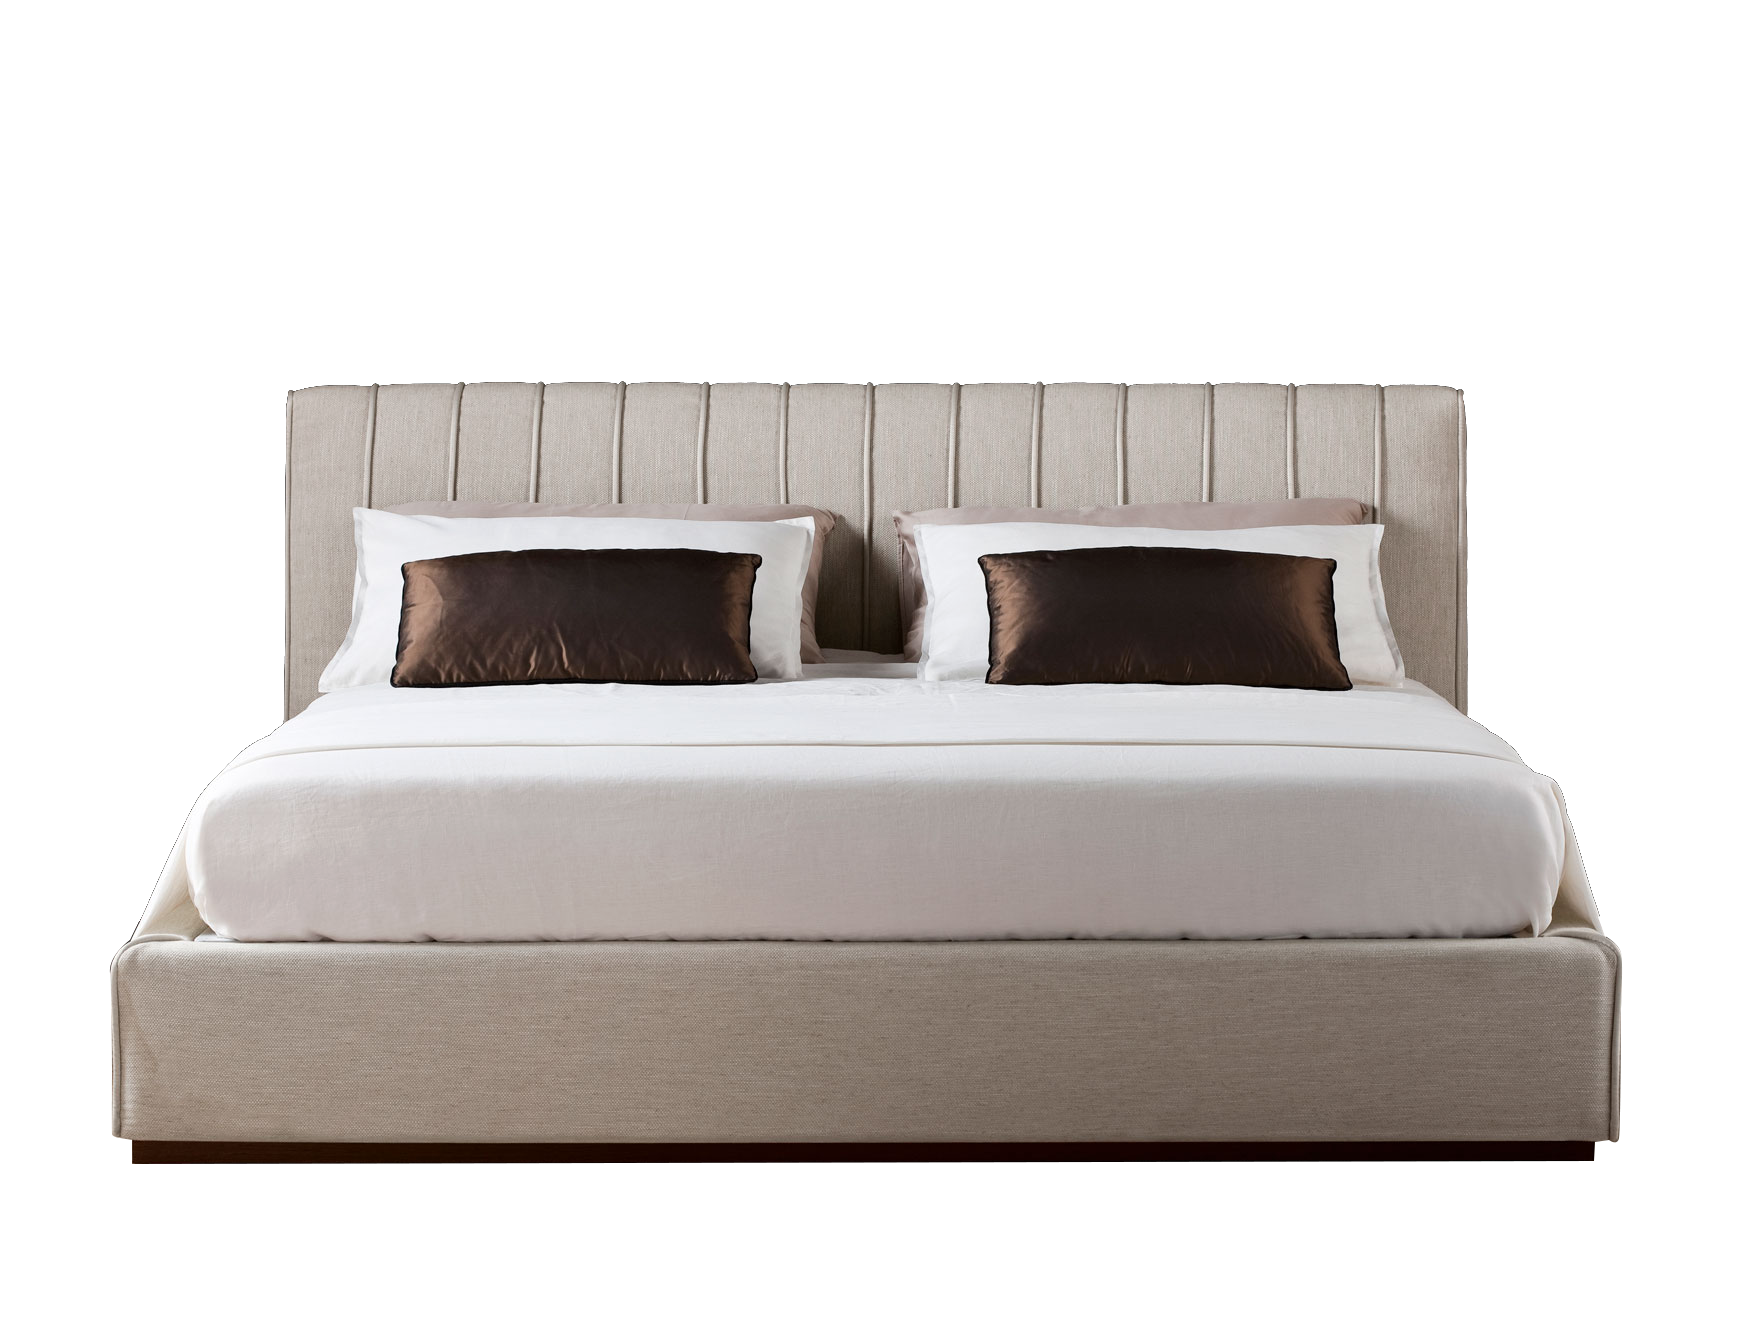 Best Pin By Eleven On 床、榻 Bed Furniture Bed Modern Bed 400 x 300